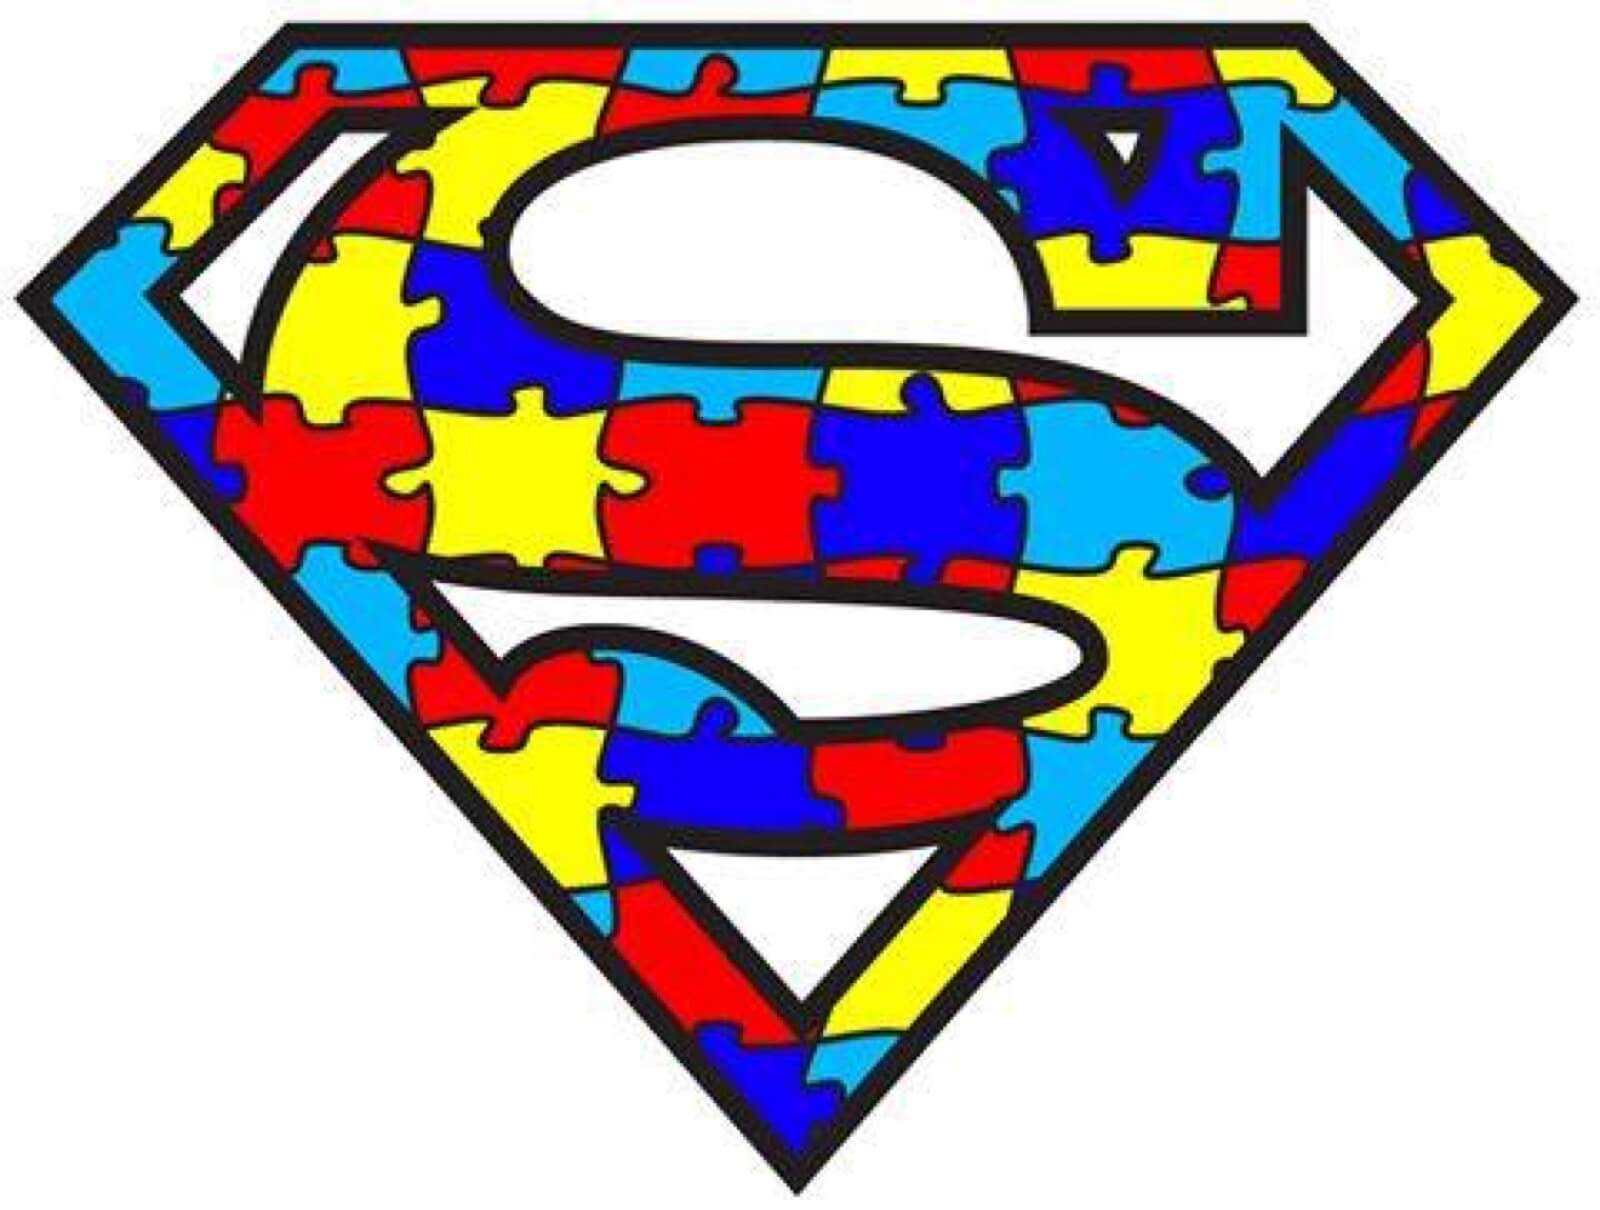 A Superman S made out of multicolred puzzle pieces, a symbol of support for the autistic community